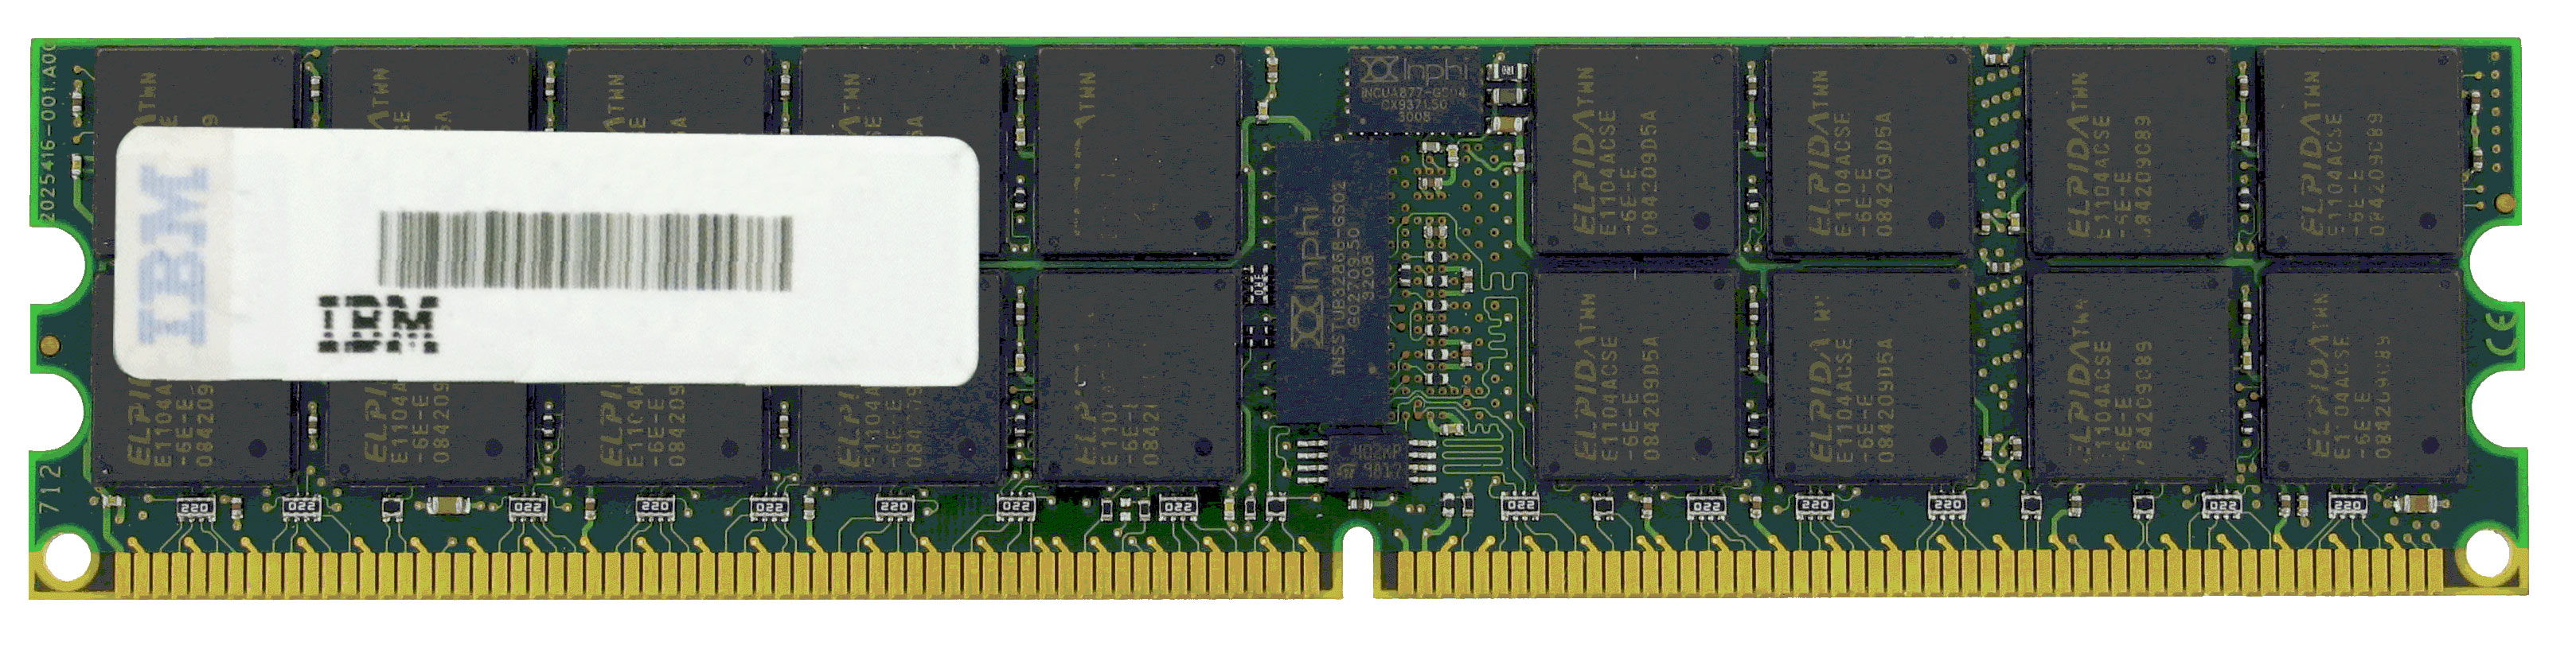 46C7427 IBM 2GB PC2-6400 DDR2-800MHz ECC Unbuffered CL6 240-Pin DIMM Dual Rank Memory Module for System x3200 M2